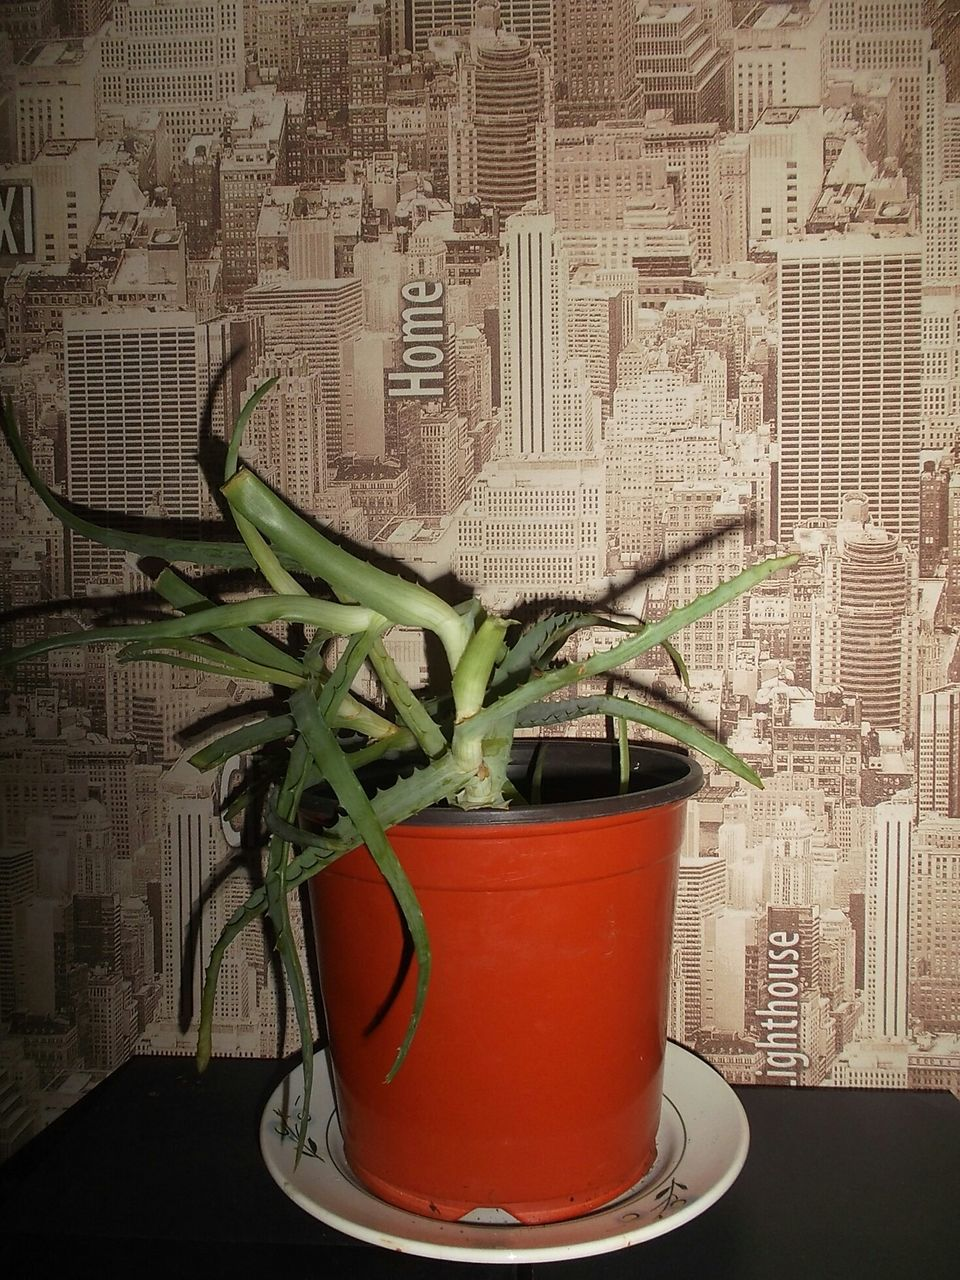 growth, potted plant, indoors, plant, no people, architecture, building exterior, close-up, nature, day, city, freshness